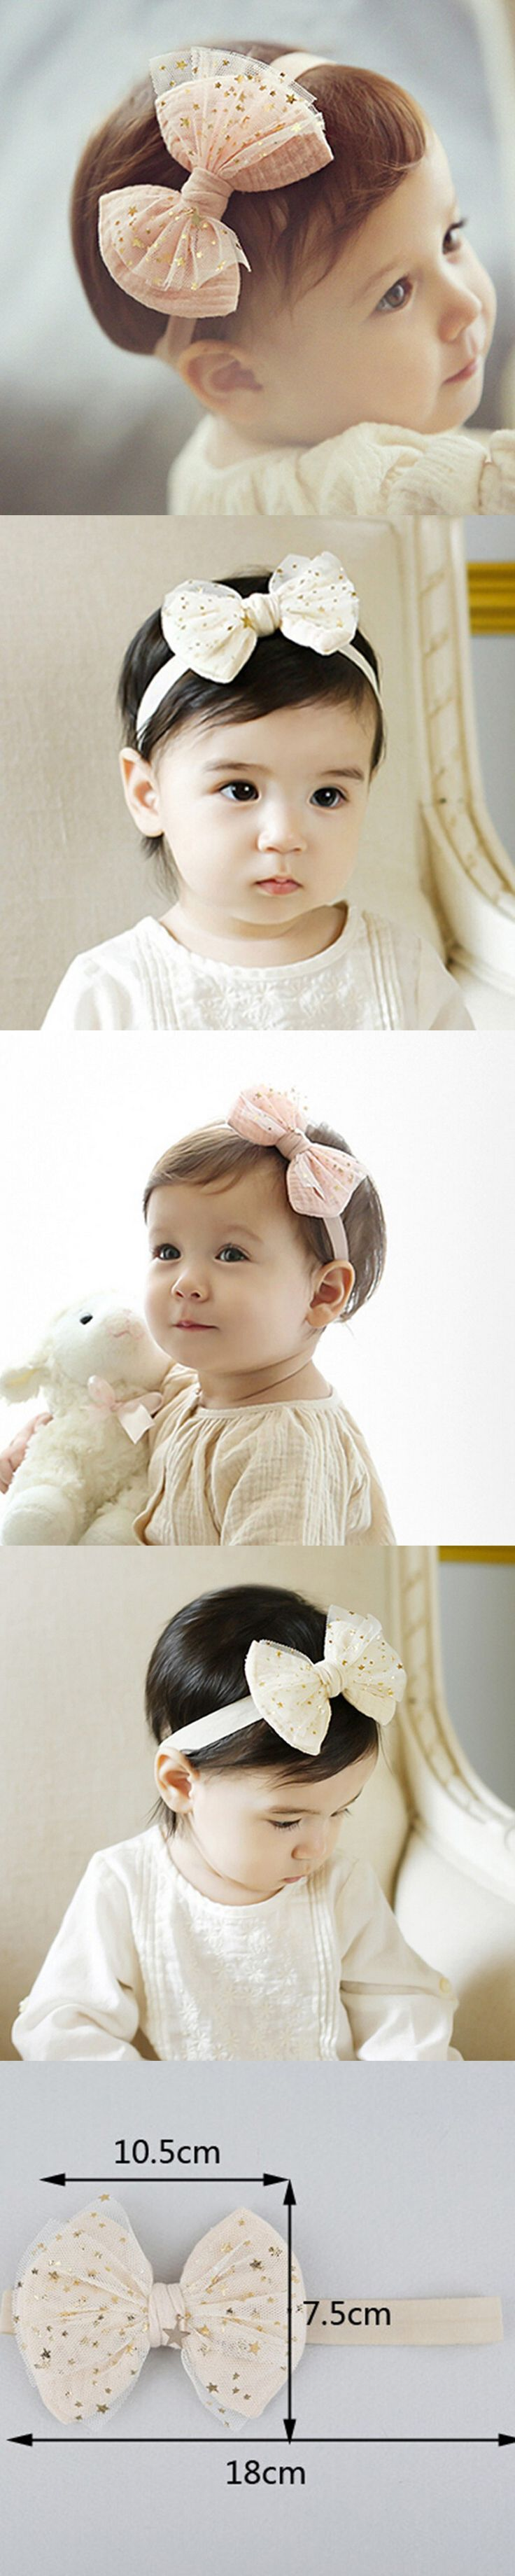 New 2016 Bow Baby Headband Child Elastic Cotton Hairband Baby Headband Lace Bows Stars Printed Turban Knot Head Wraps